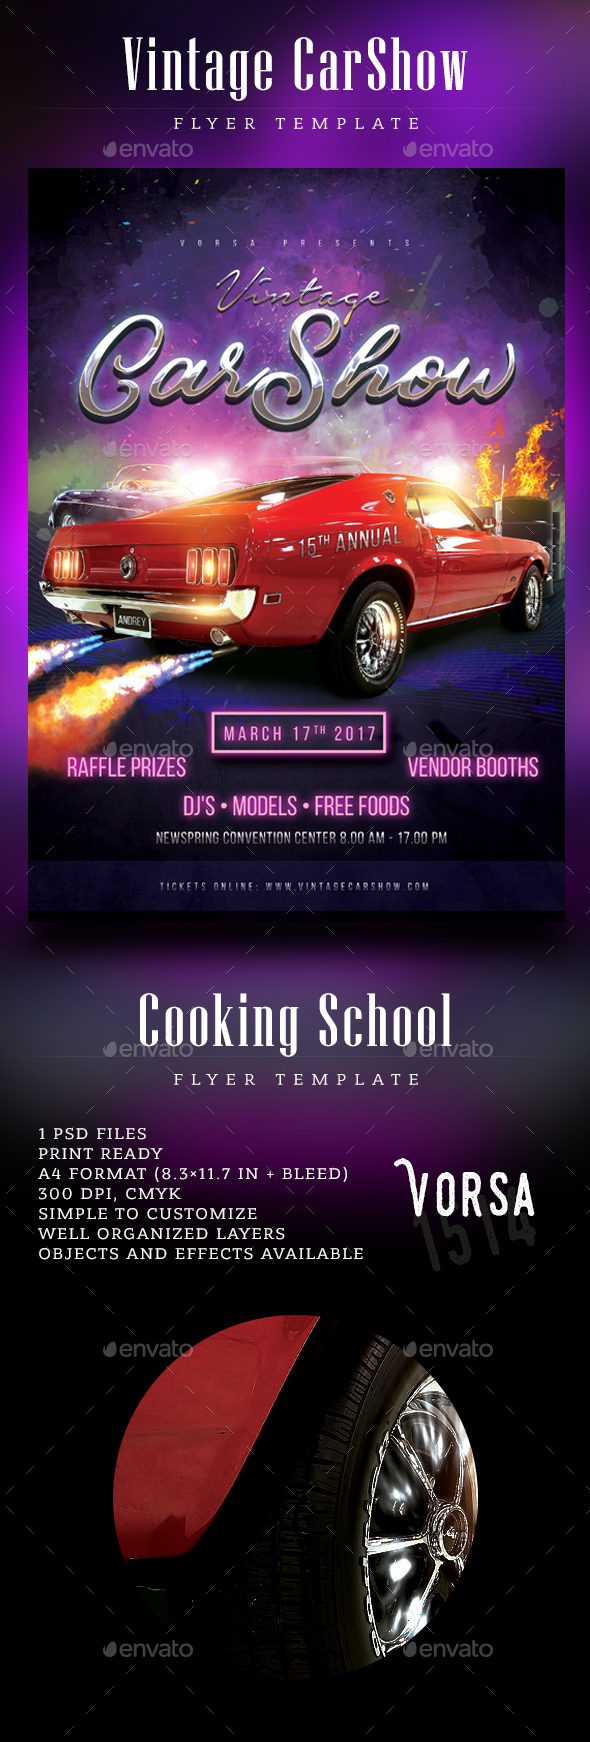 Vintage CarShow Flyer - Events Flyers